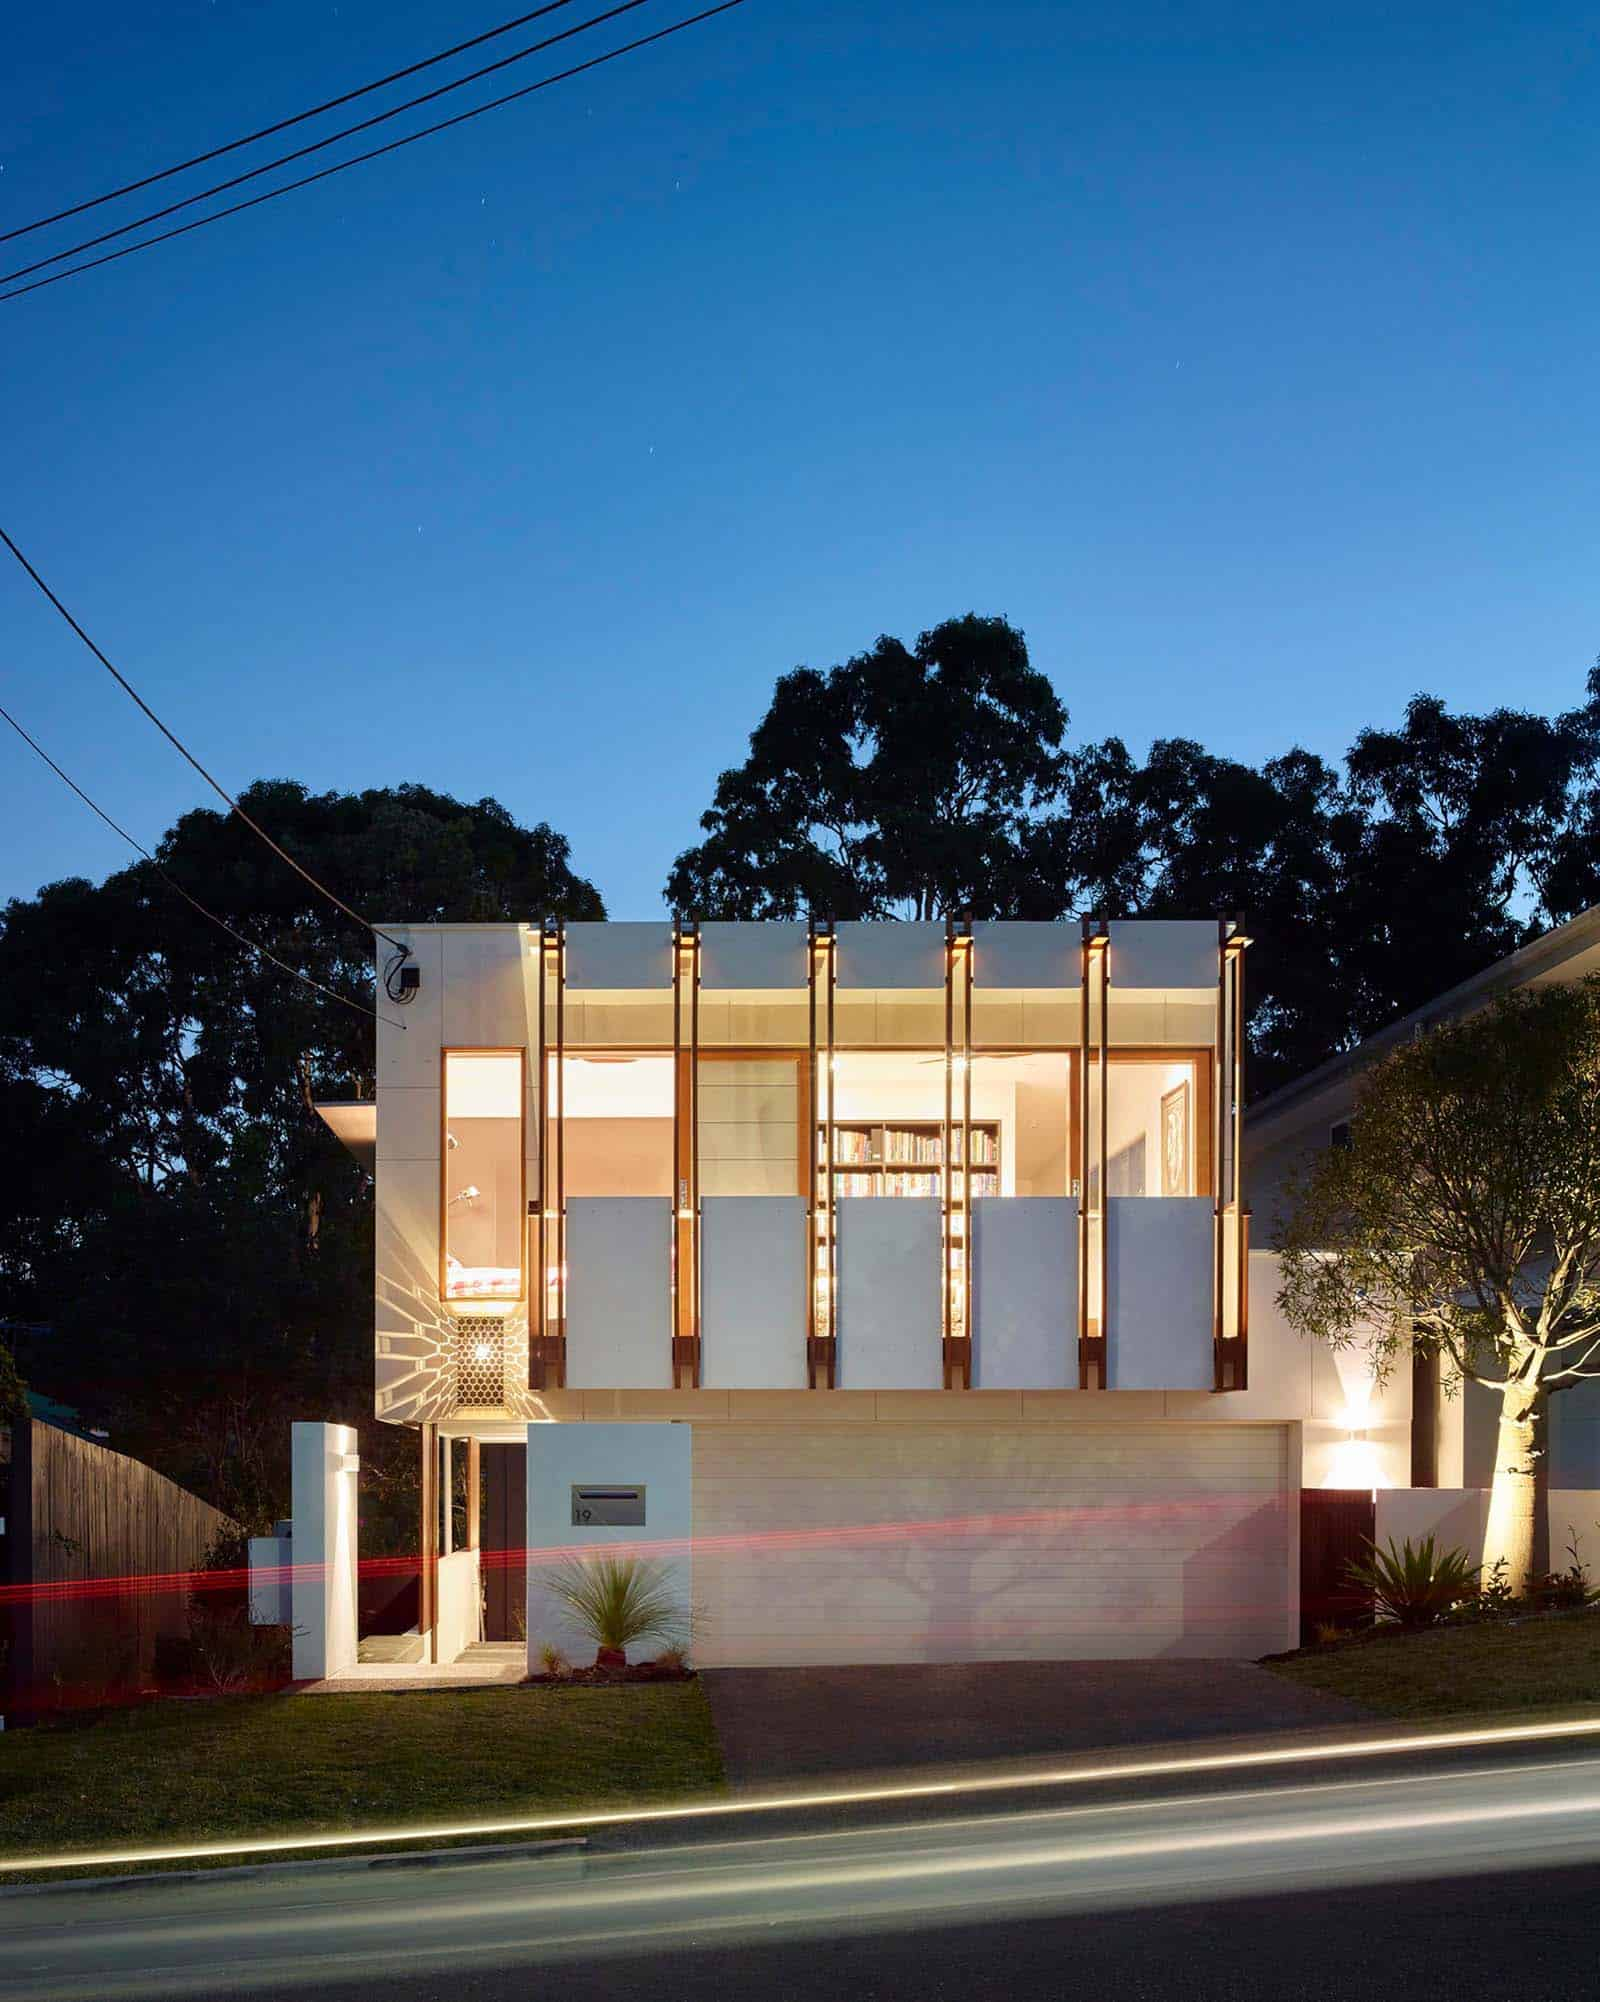 Architecture-Contemporary-Home-ONeill Architecture-15-1 Kindesign